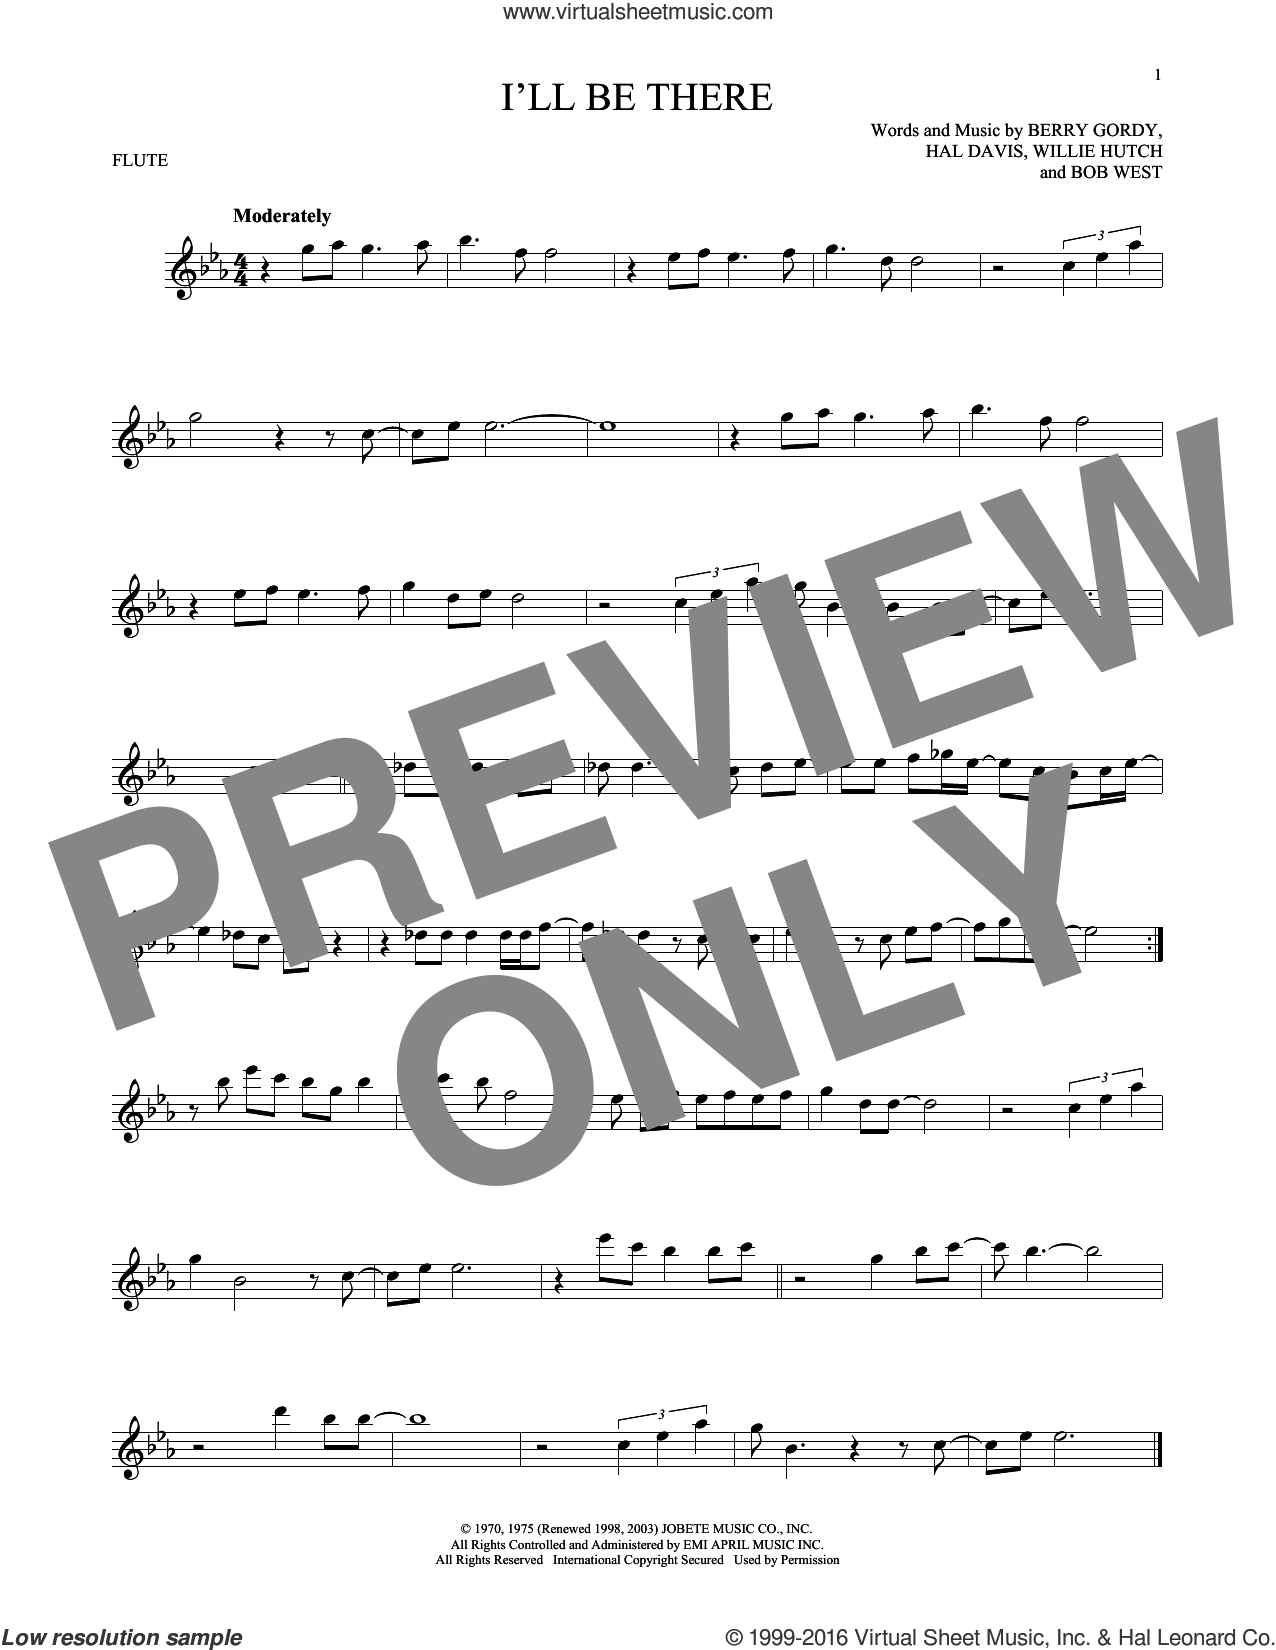 I'll Be There sheet music for flute solo by The Jackson 5, Berry Gordy Jr., Bob West and Hal Davis, intermediate skill level